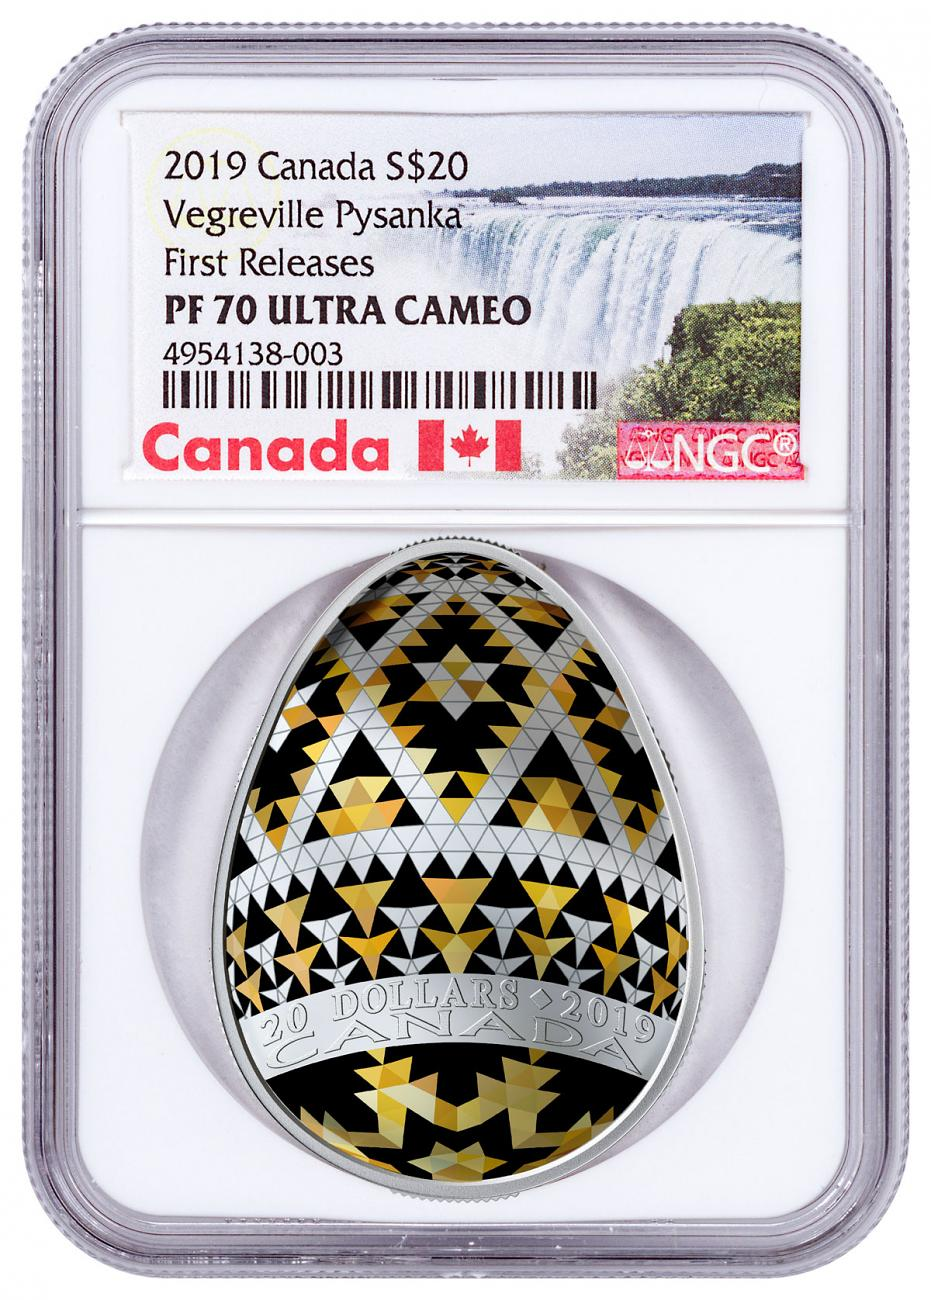 2019 Canada Ukrainian Pysanka - Vegreville Egg Shaped 1 oz Silver Colorized Proof $20 Coin NGC PF70 UC FR Exclusive Canada Label